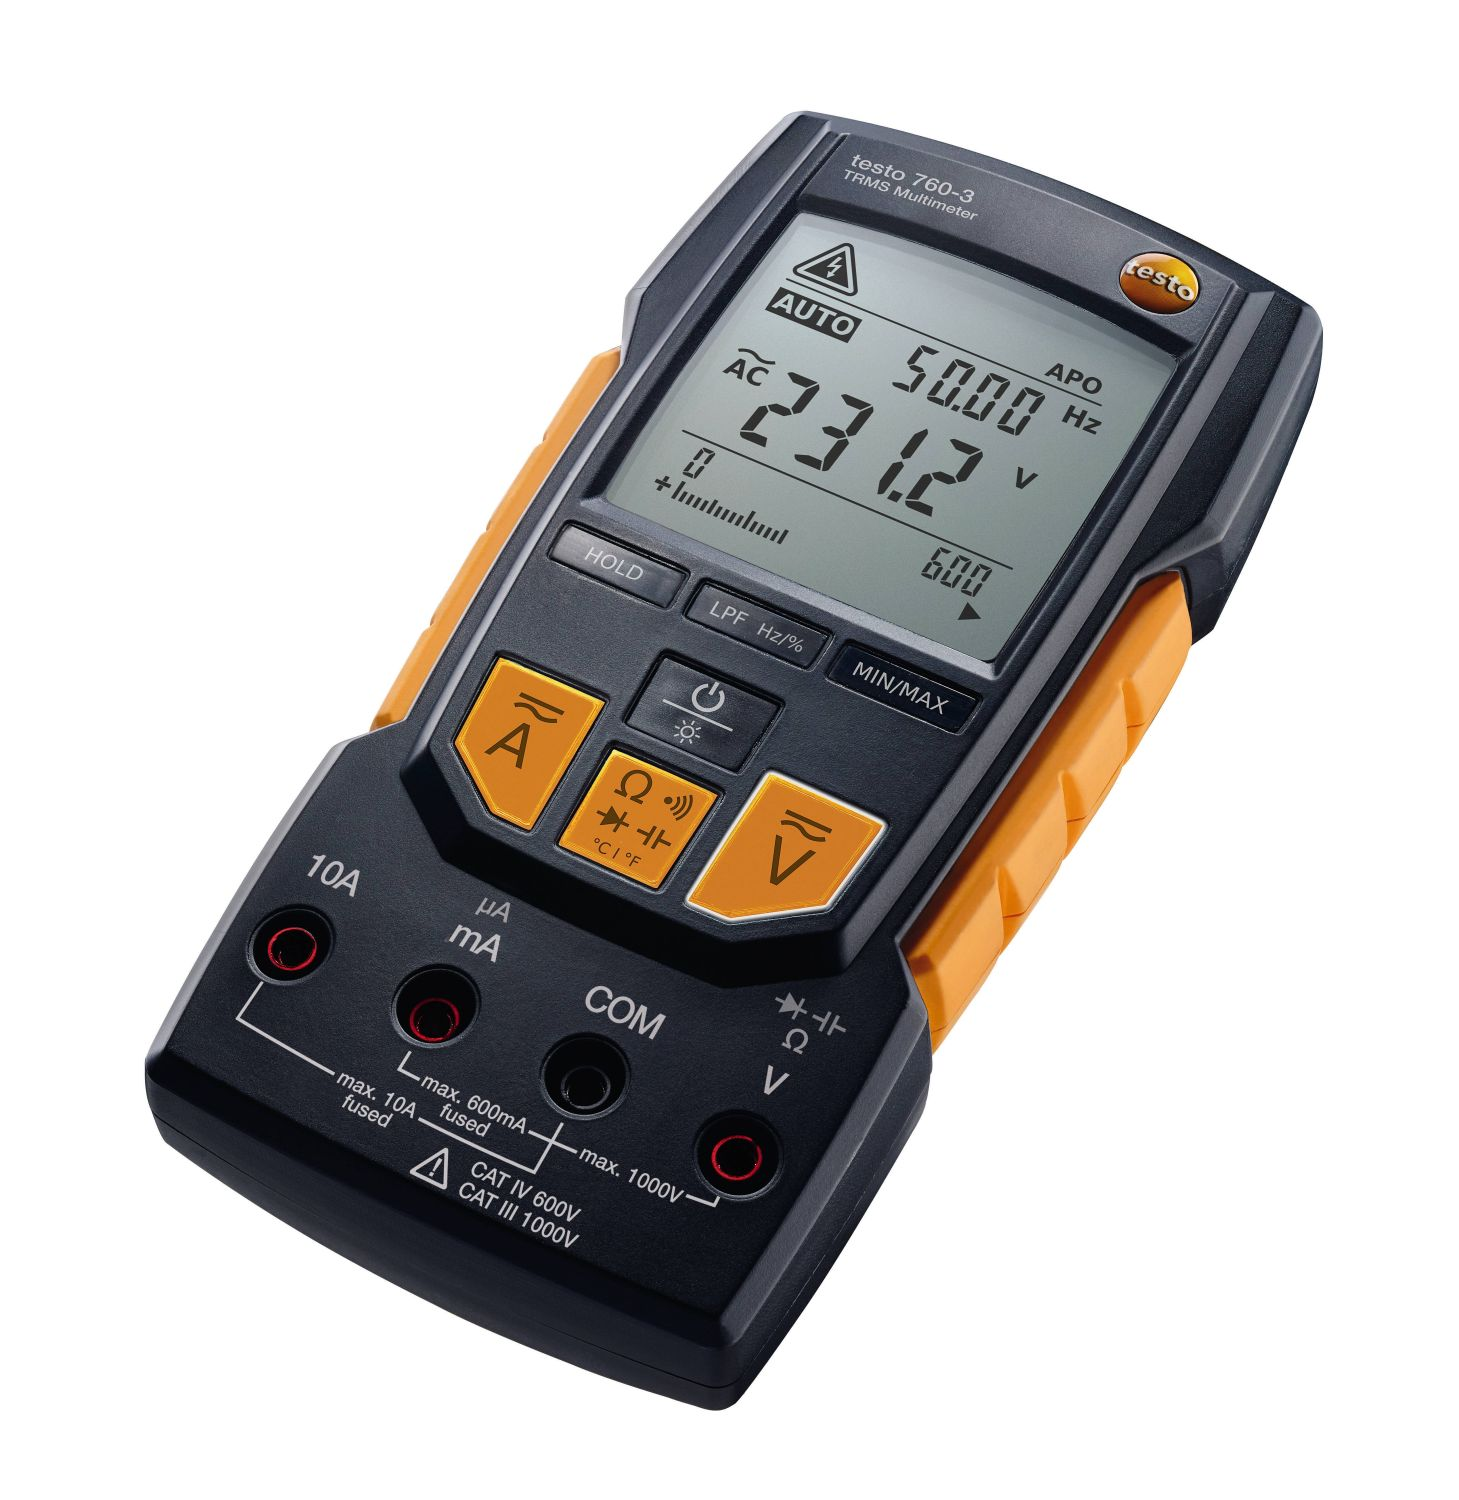 testo-760-3-230V-instrument-others-005887.jpg